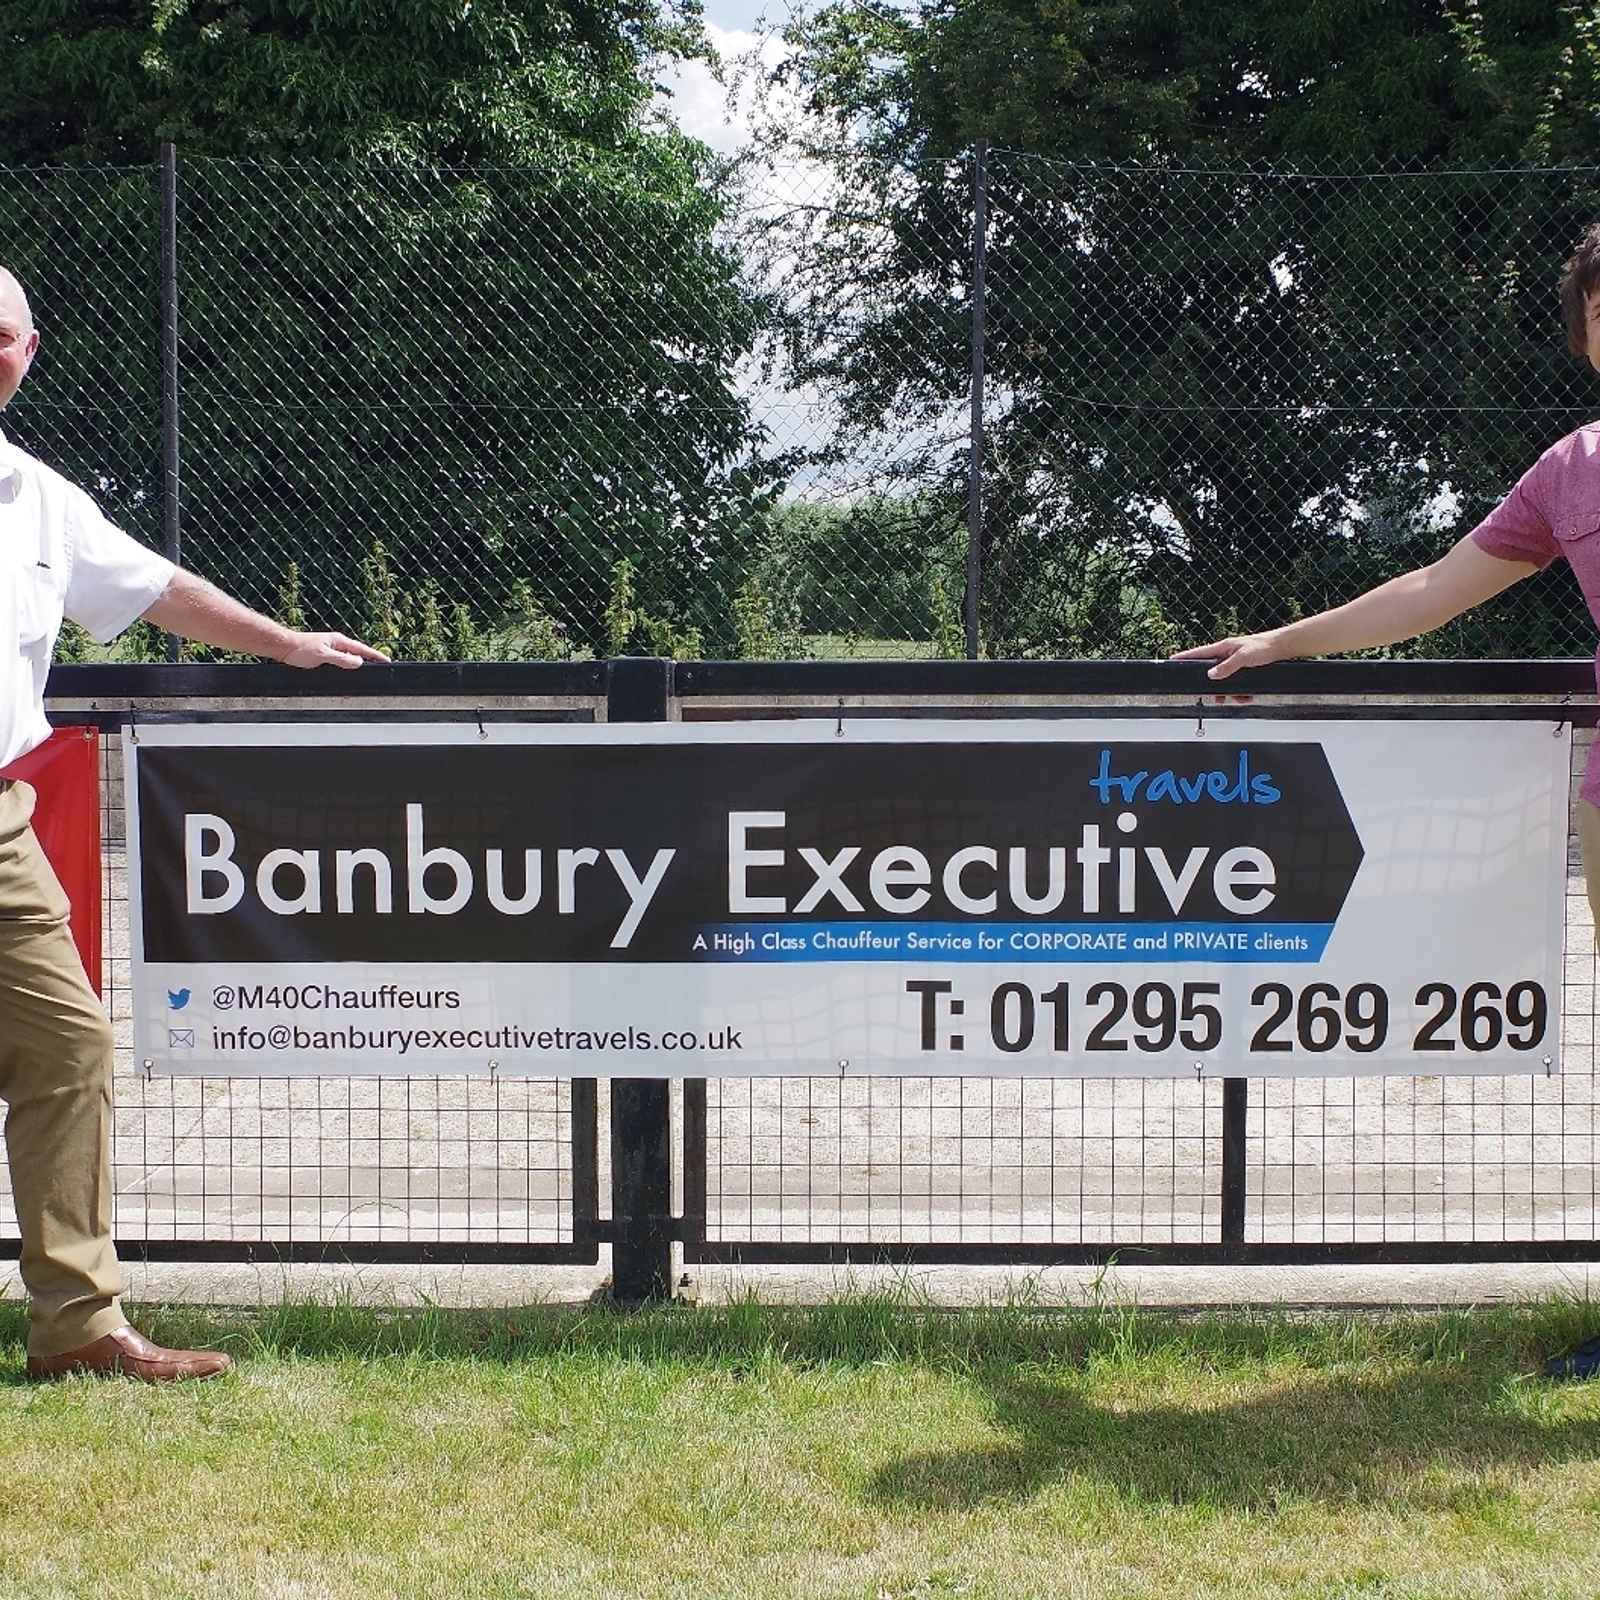 Banbury Executive Travels support the club with pitch side advertising